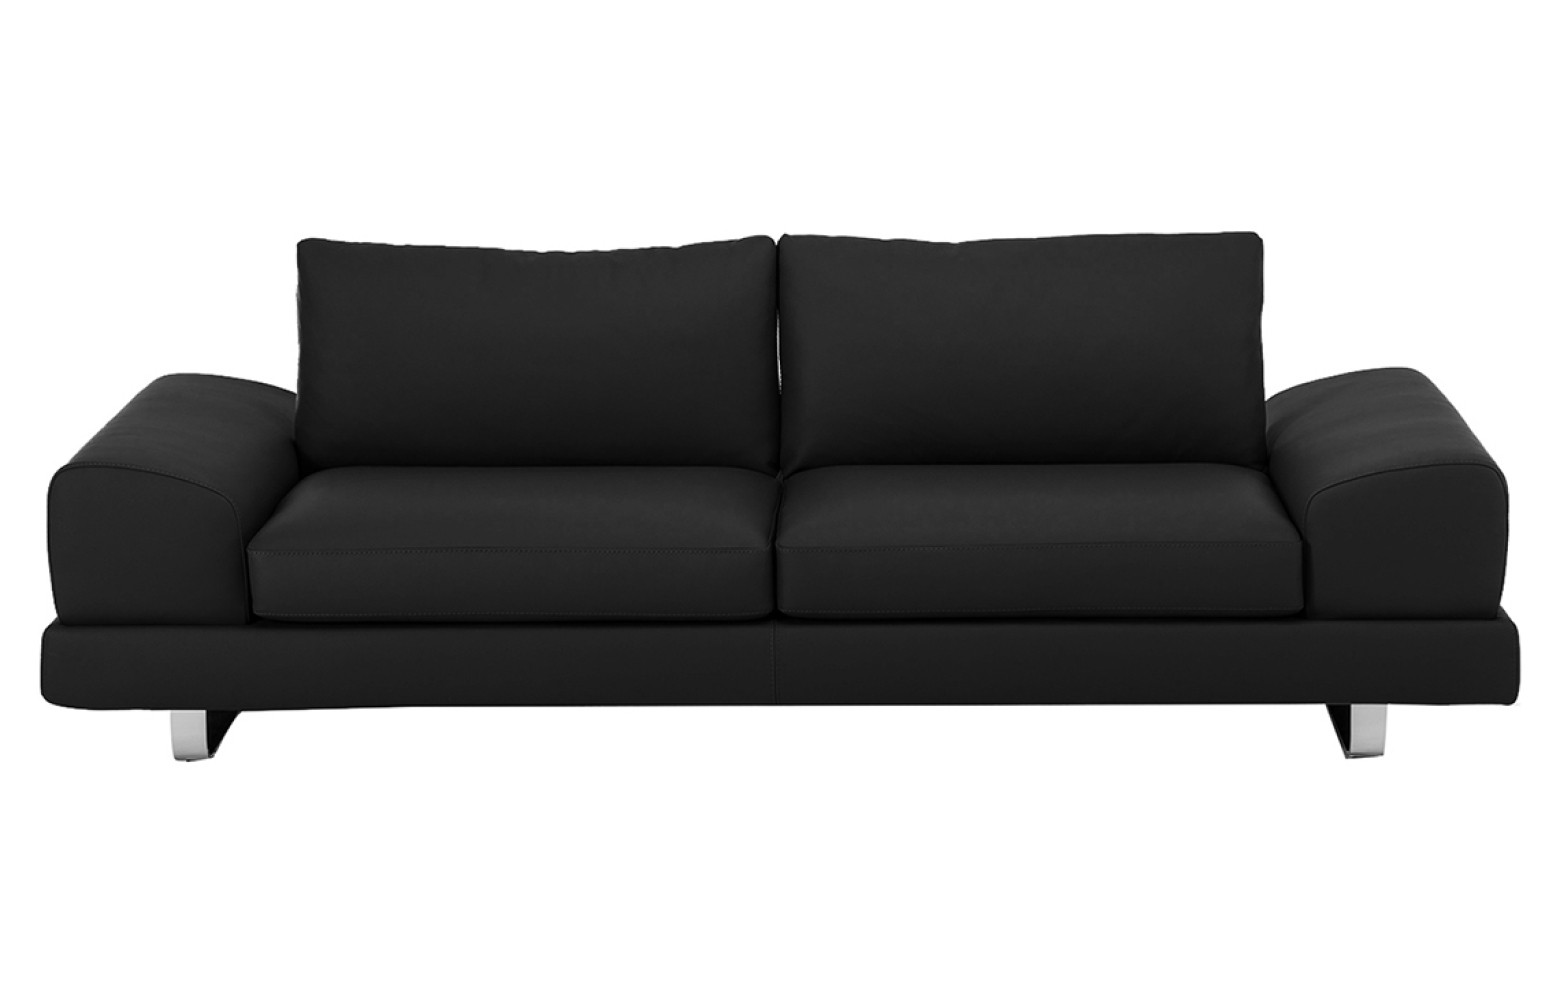 sofas n more nz modern sofa designs for drawing room 2017 bloom online outlet who 39s perfect